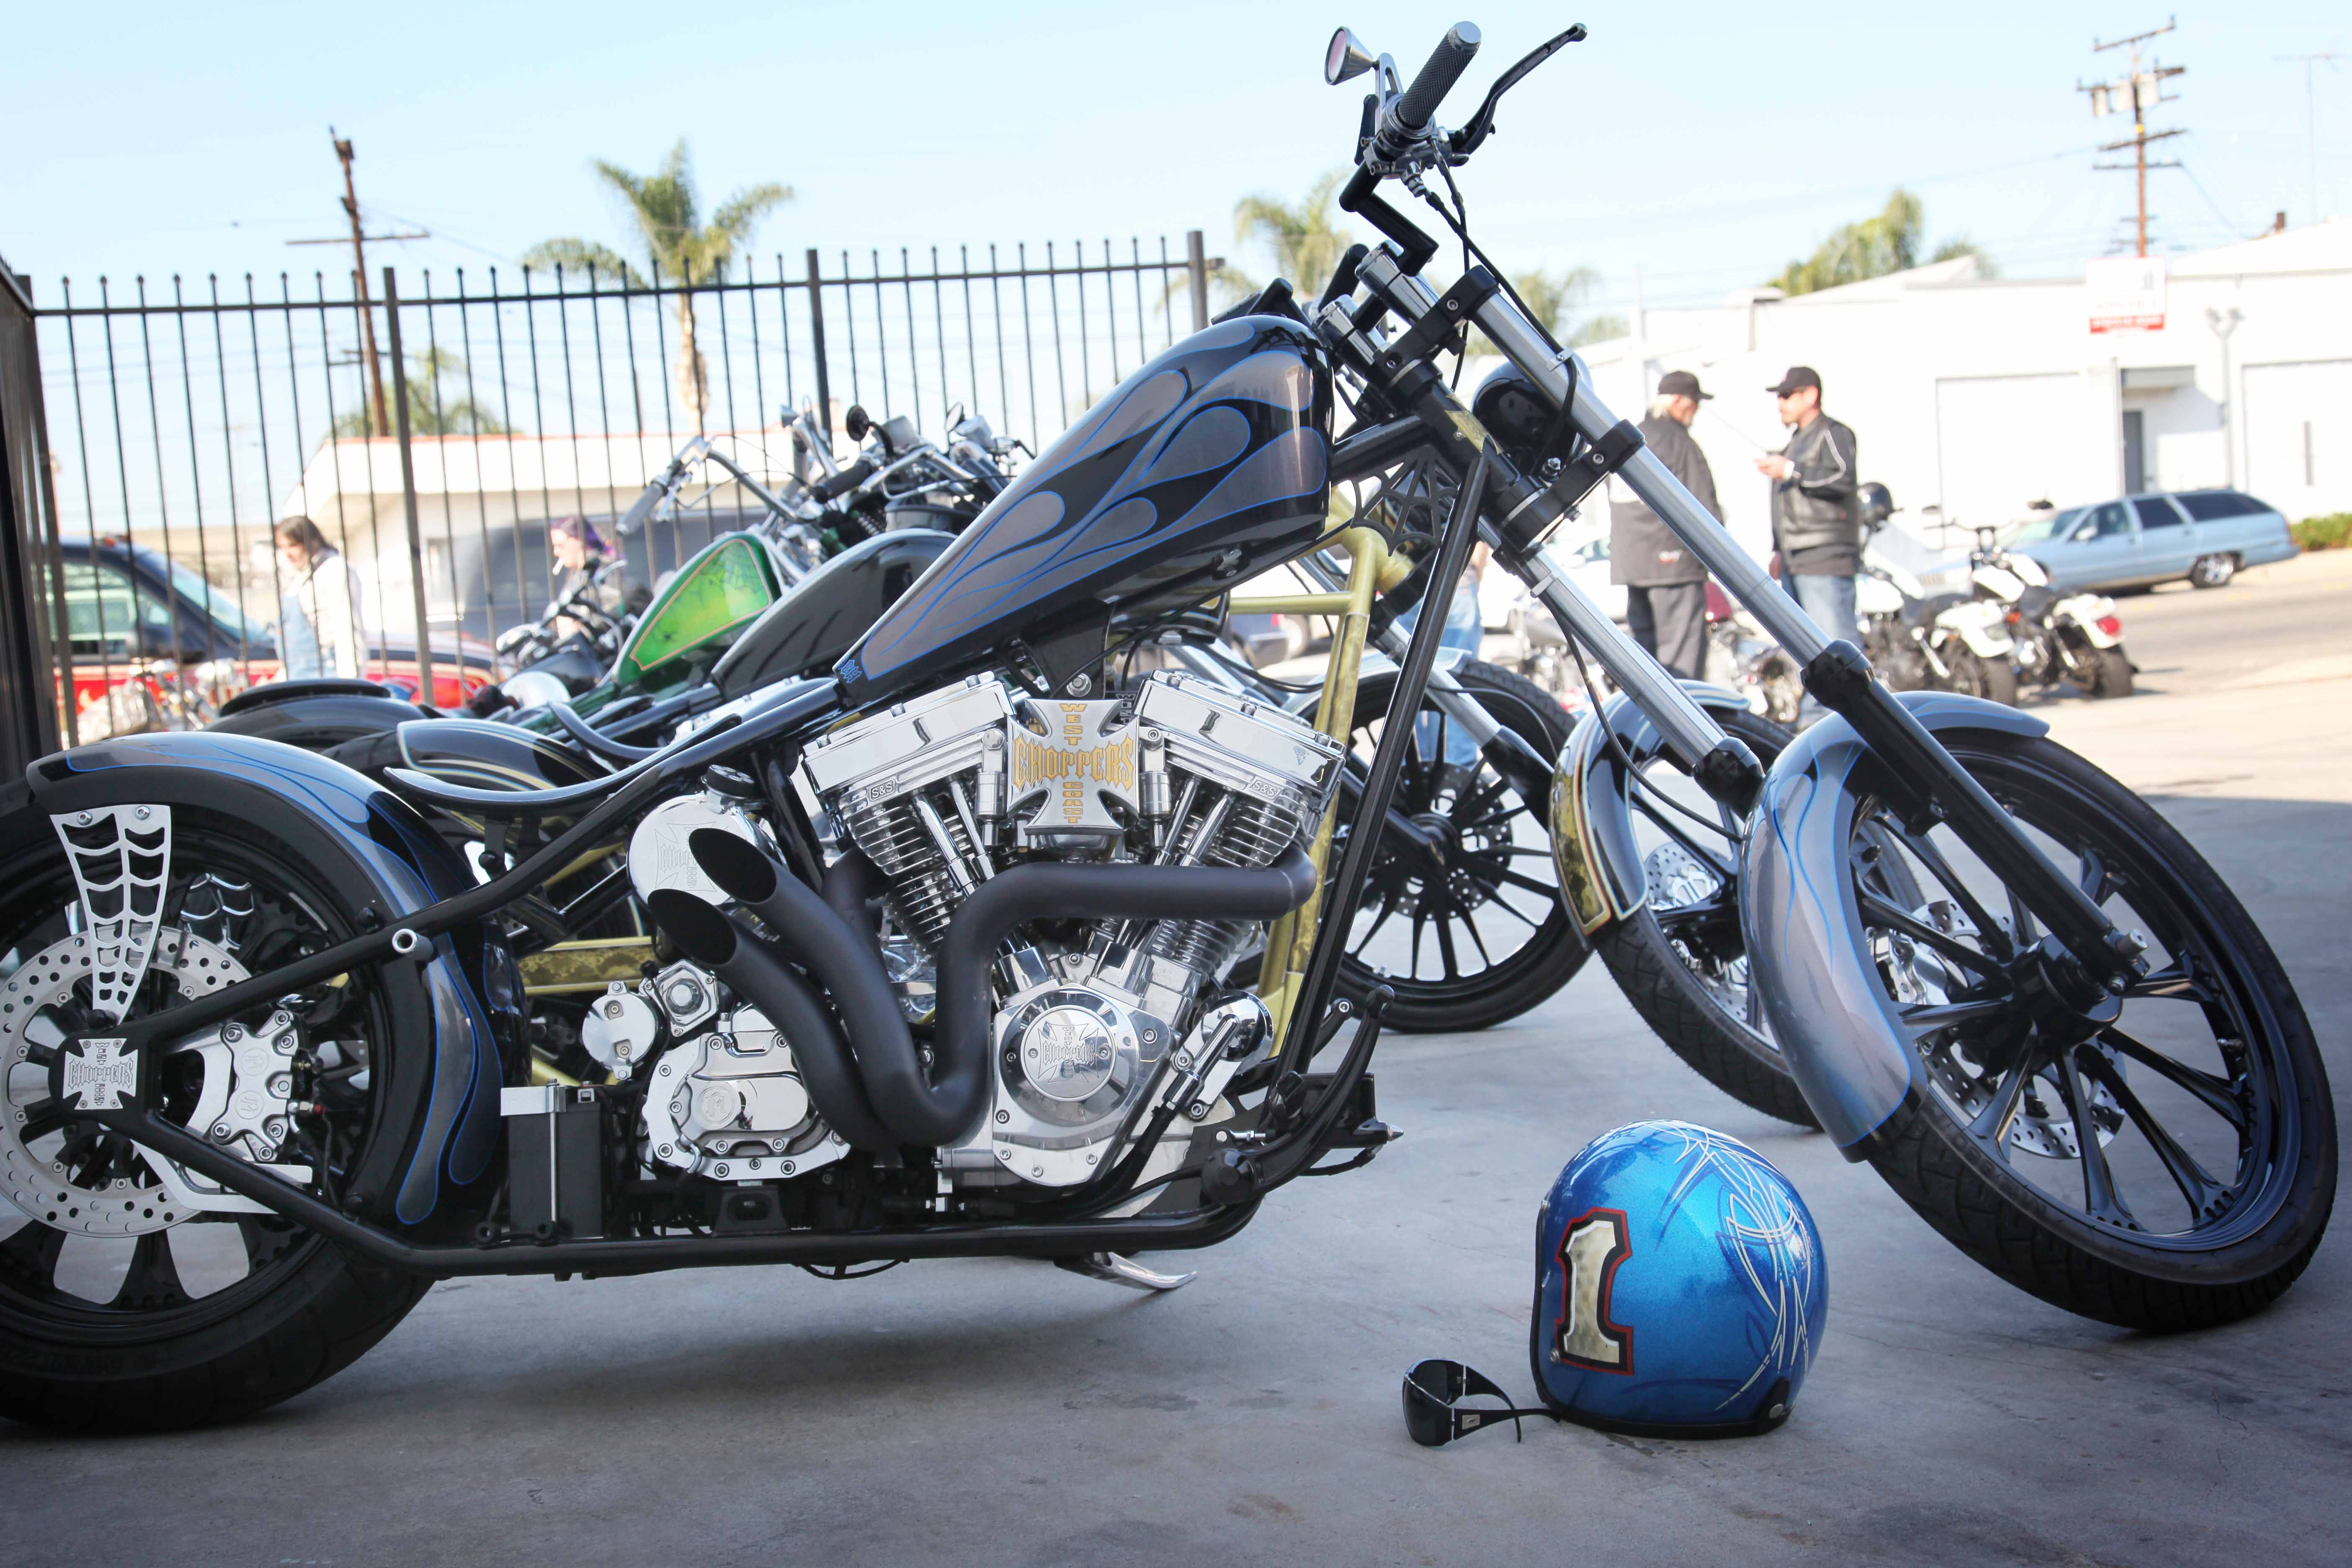 west coast chopper motorcycle pinterest. Black Bedroom Furniture Sets. Home Design Ideas